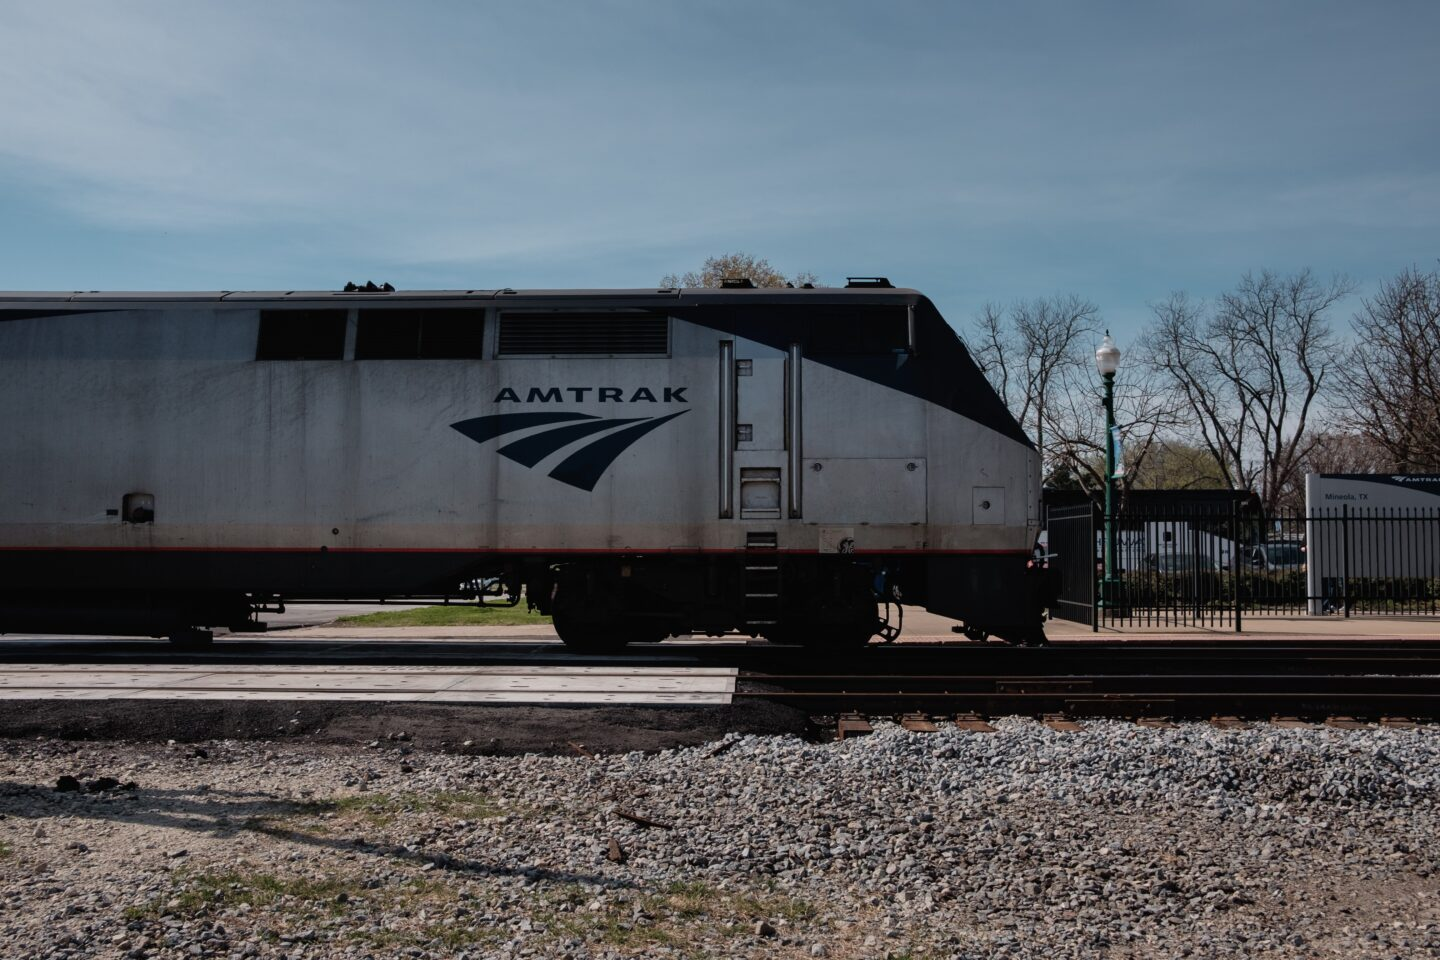 traveling with Amtrak.